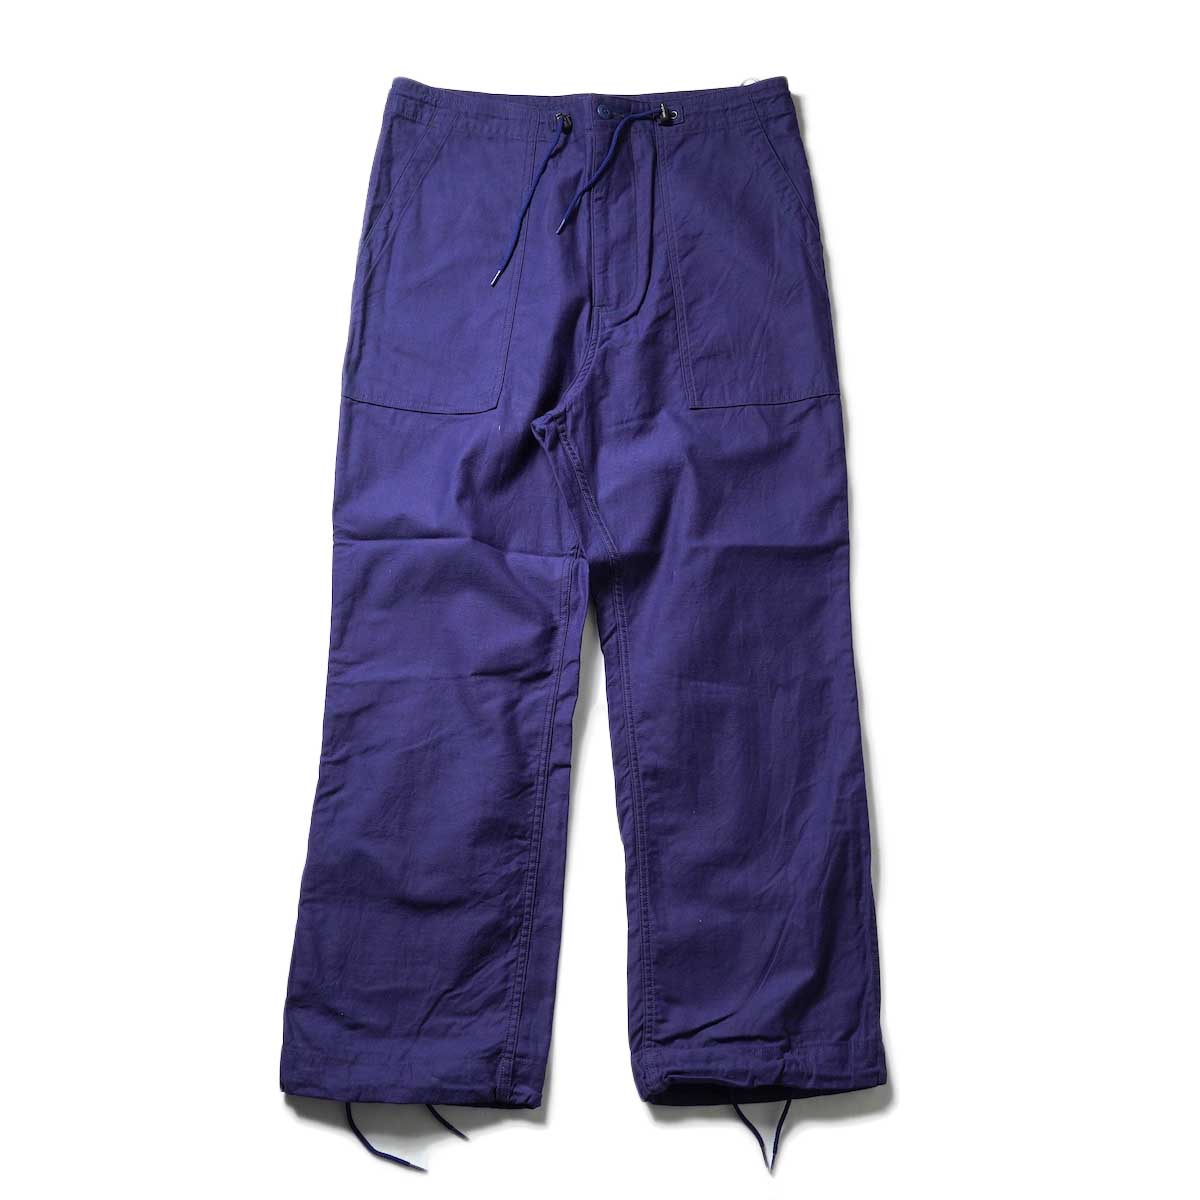 Needles / STRING FATIGUE PANT - BACK SATEEN (Navy)正面